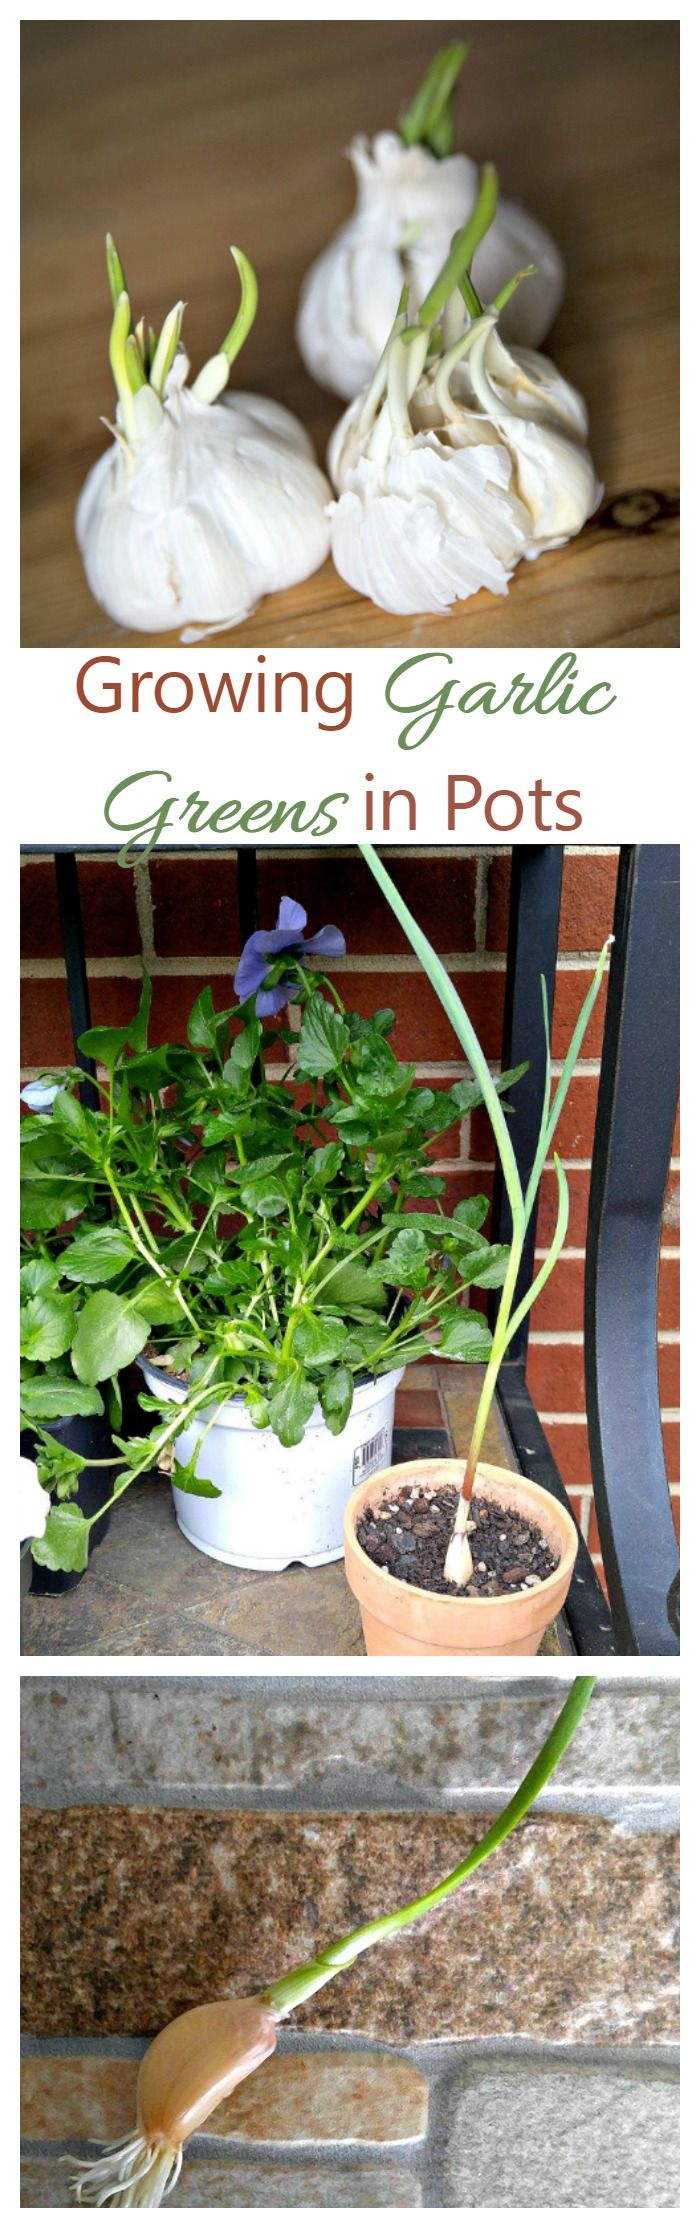 Don't toss that sprouted garlic! Growing garlic greens in pots is very easy to do. I started with a piece of sprouted garlic and have a foot tall plant a month later.